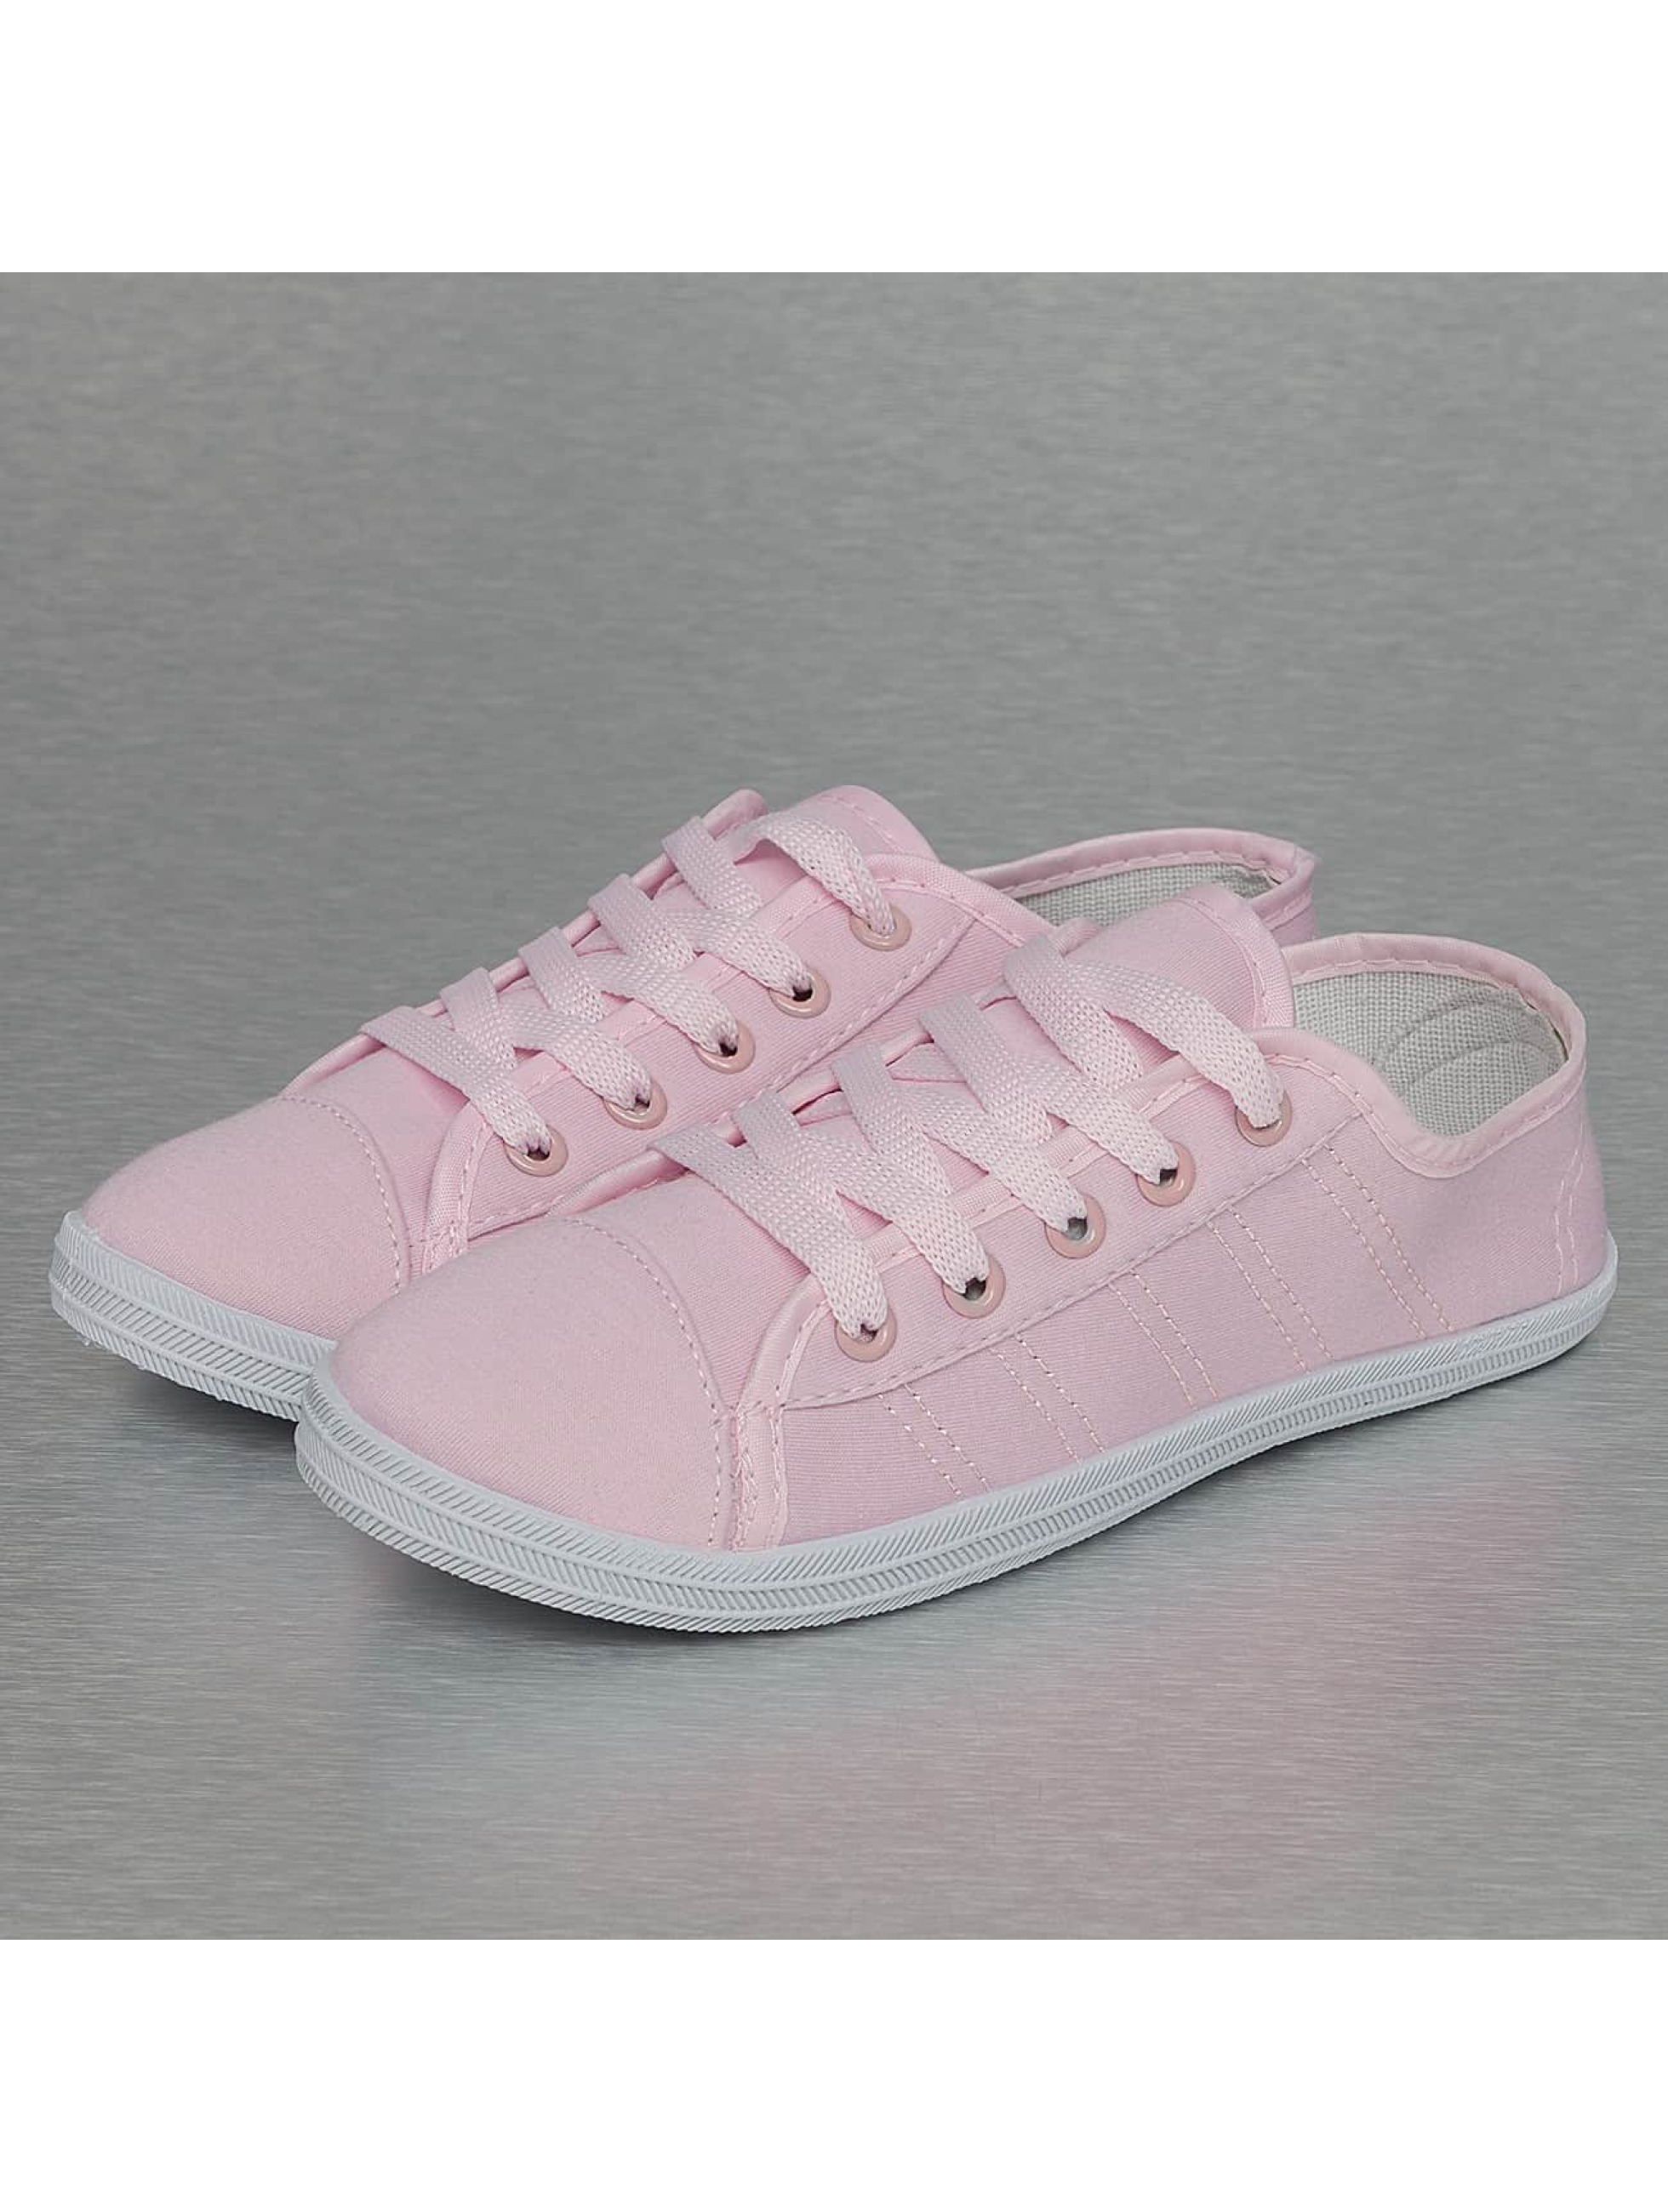 Jumex schoen / sneaker Basic Lite in rose